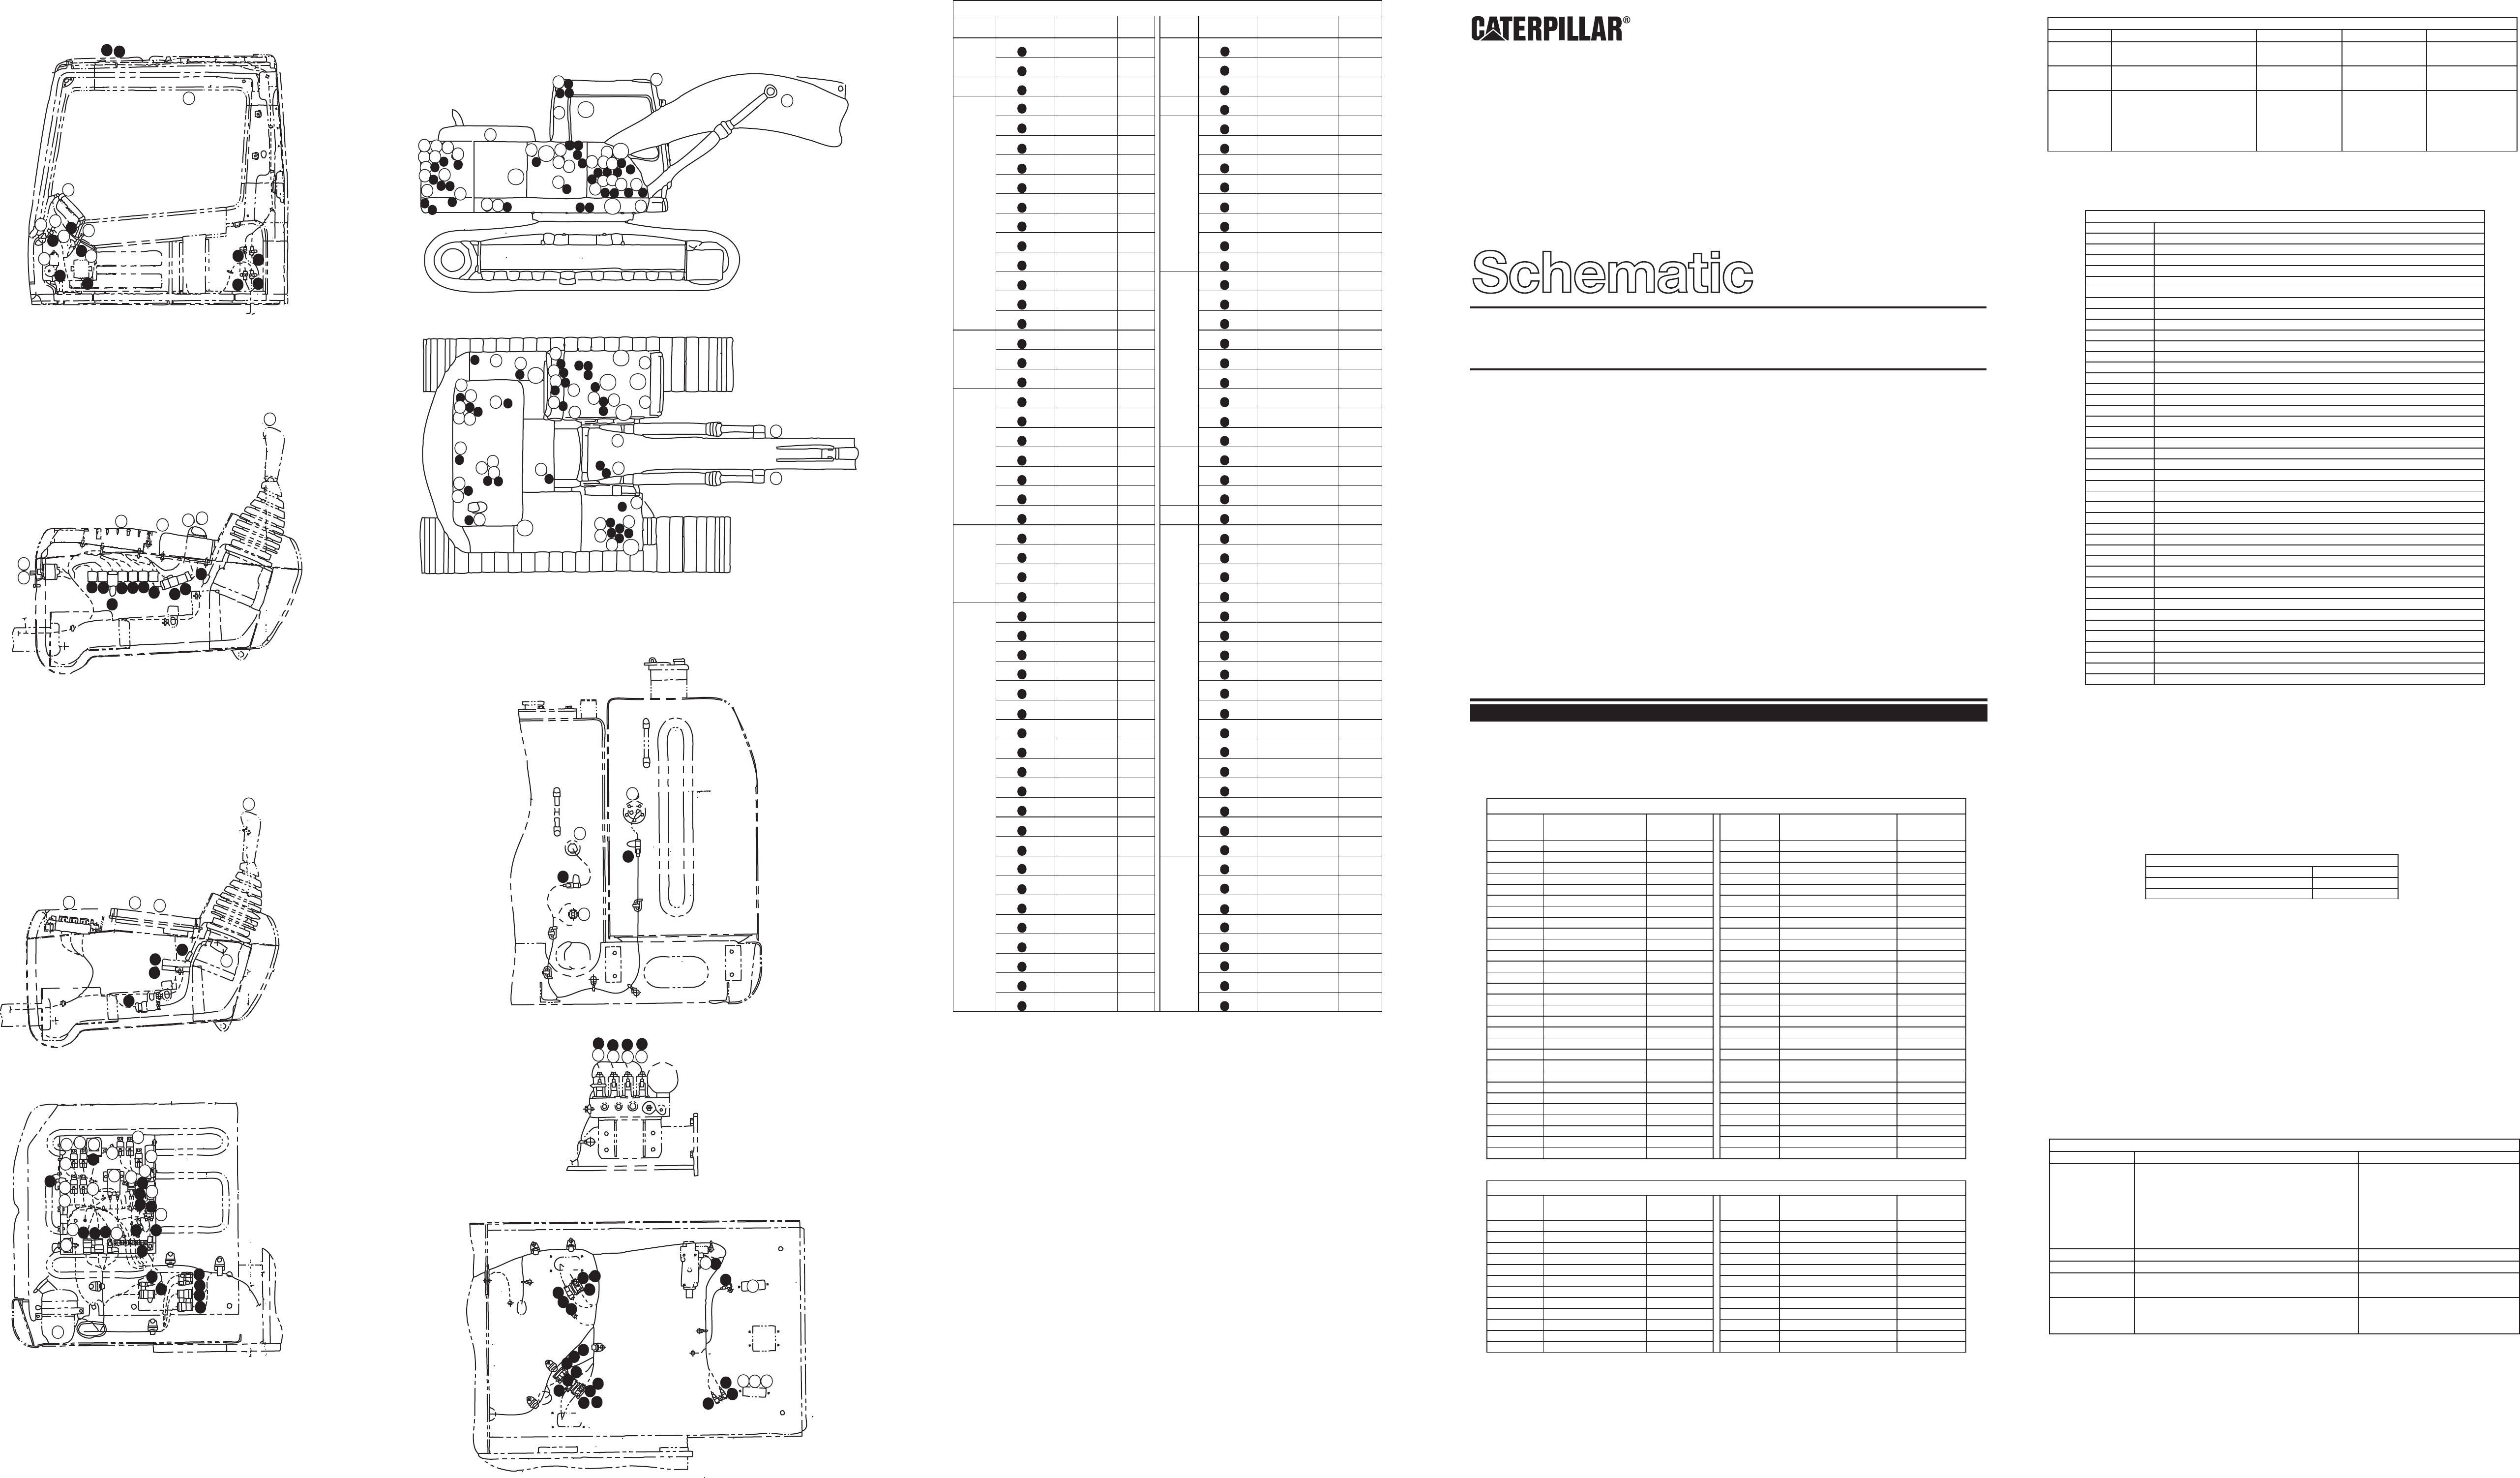 320b u excavator electrical schematic akashi used in service manual senr9240